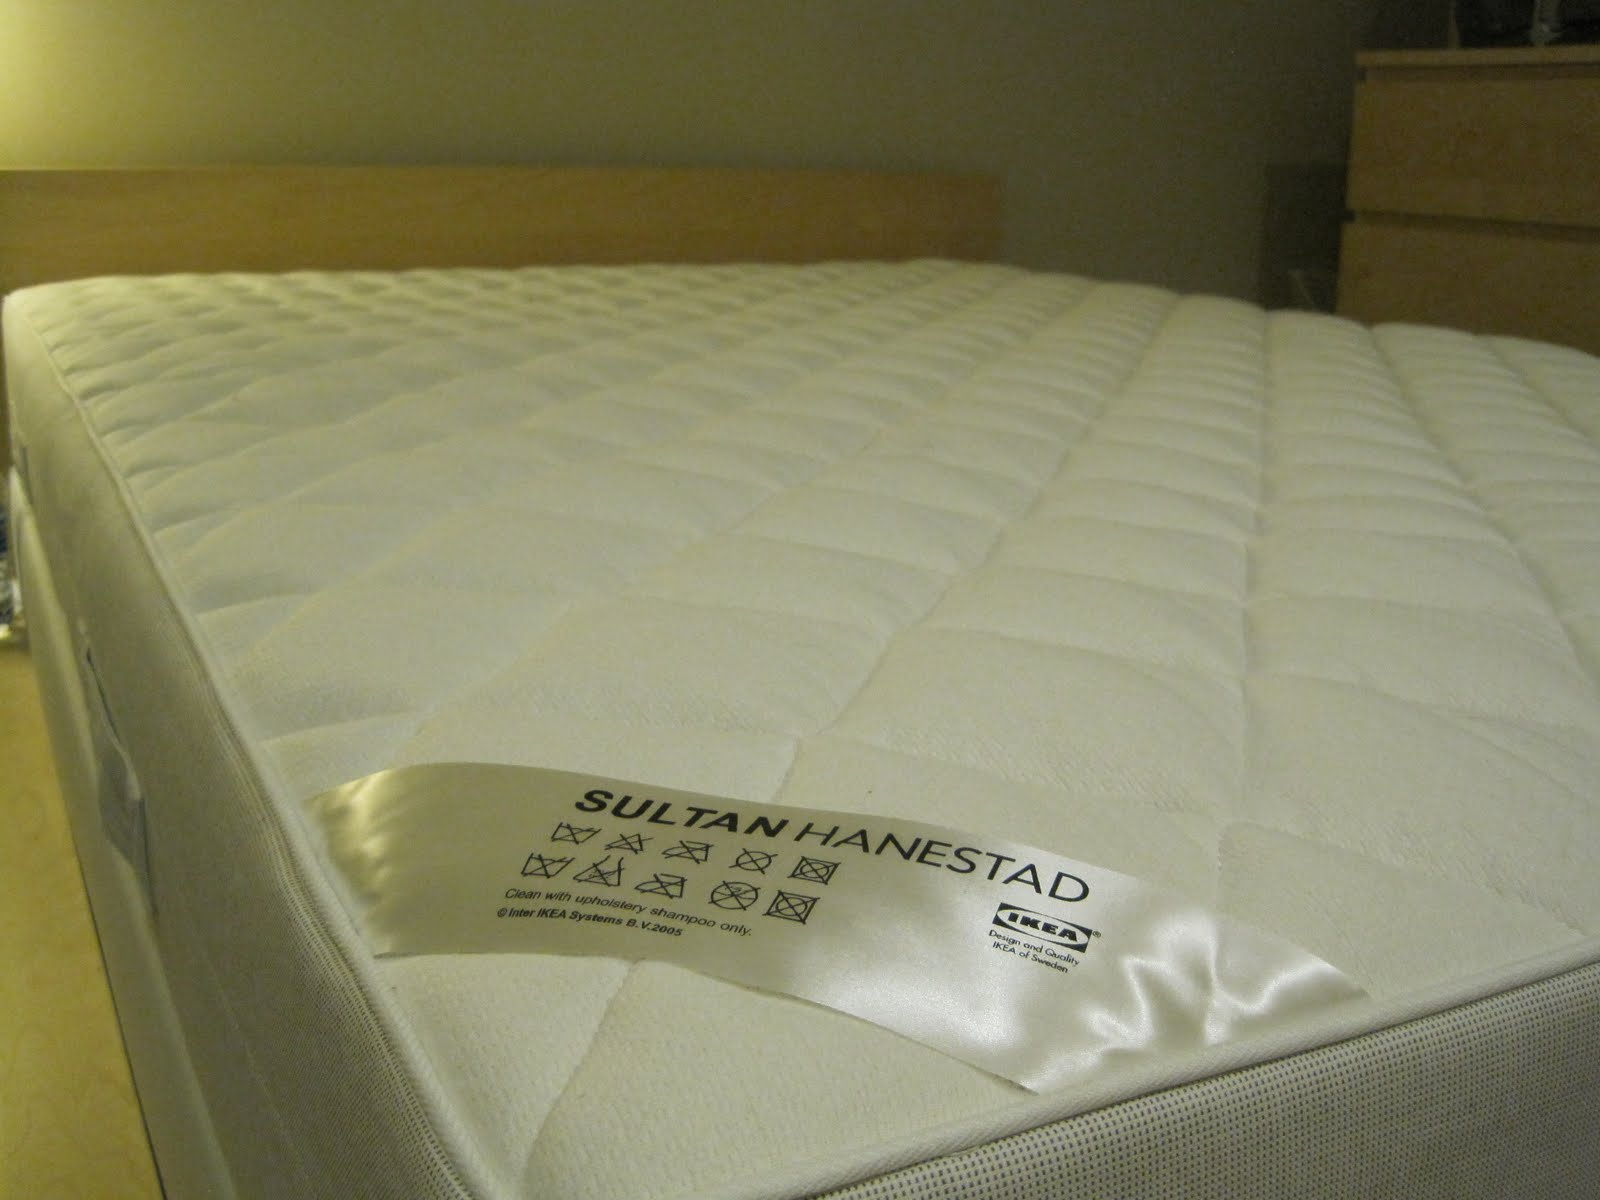 Ikea Mattress From Sultan Review Image Source Moblog Whmsoft